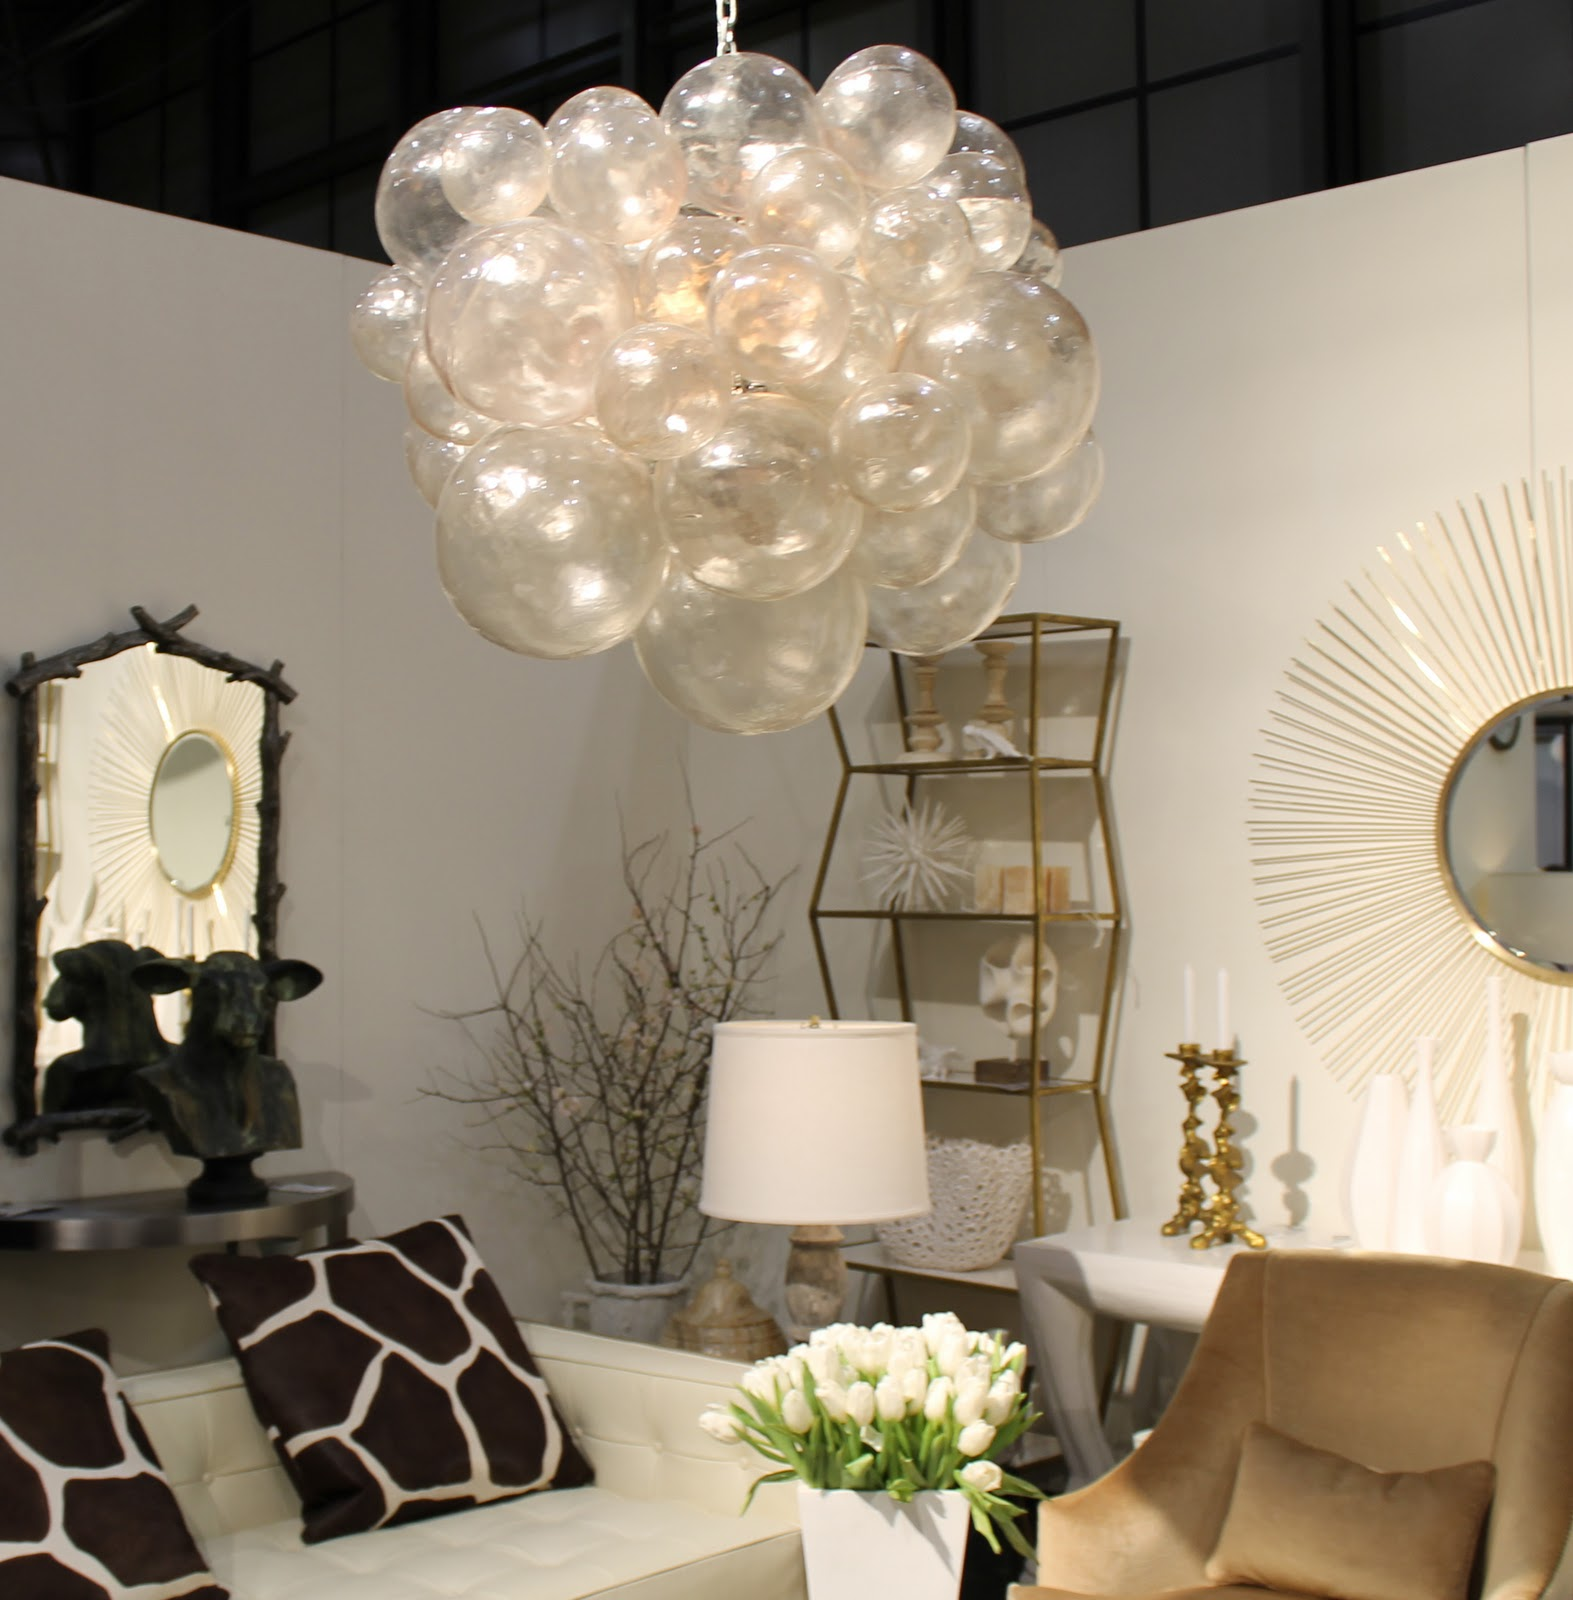 hamptontoes: NYIGF